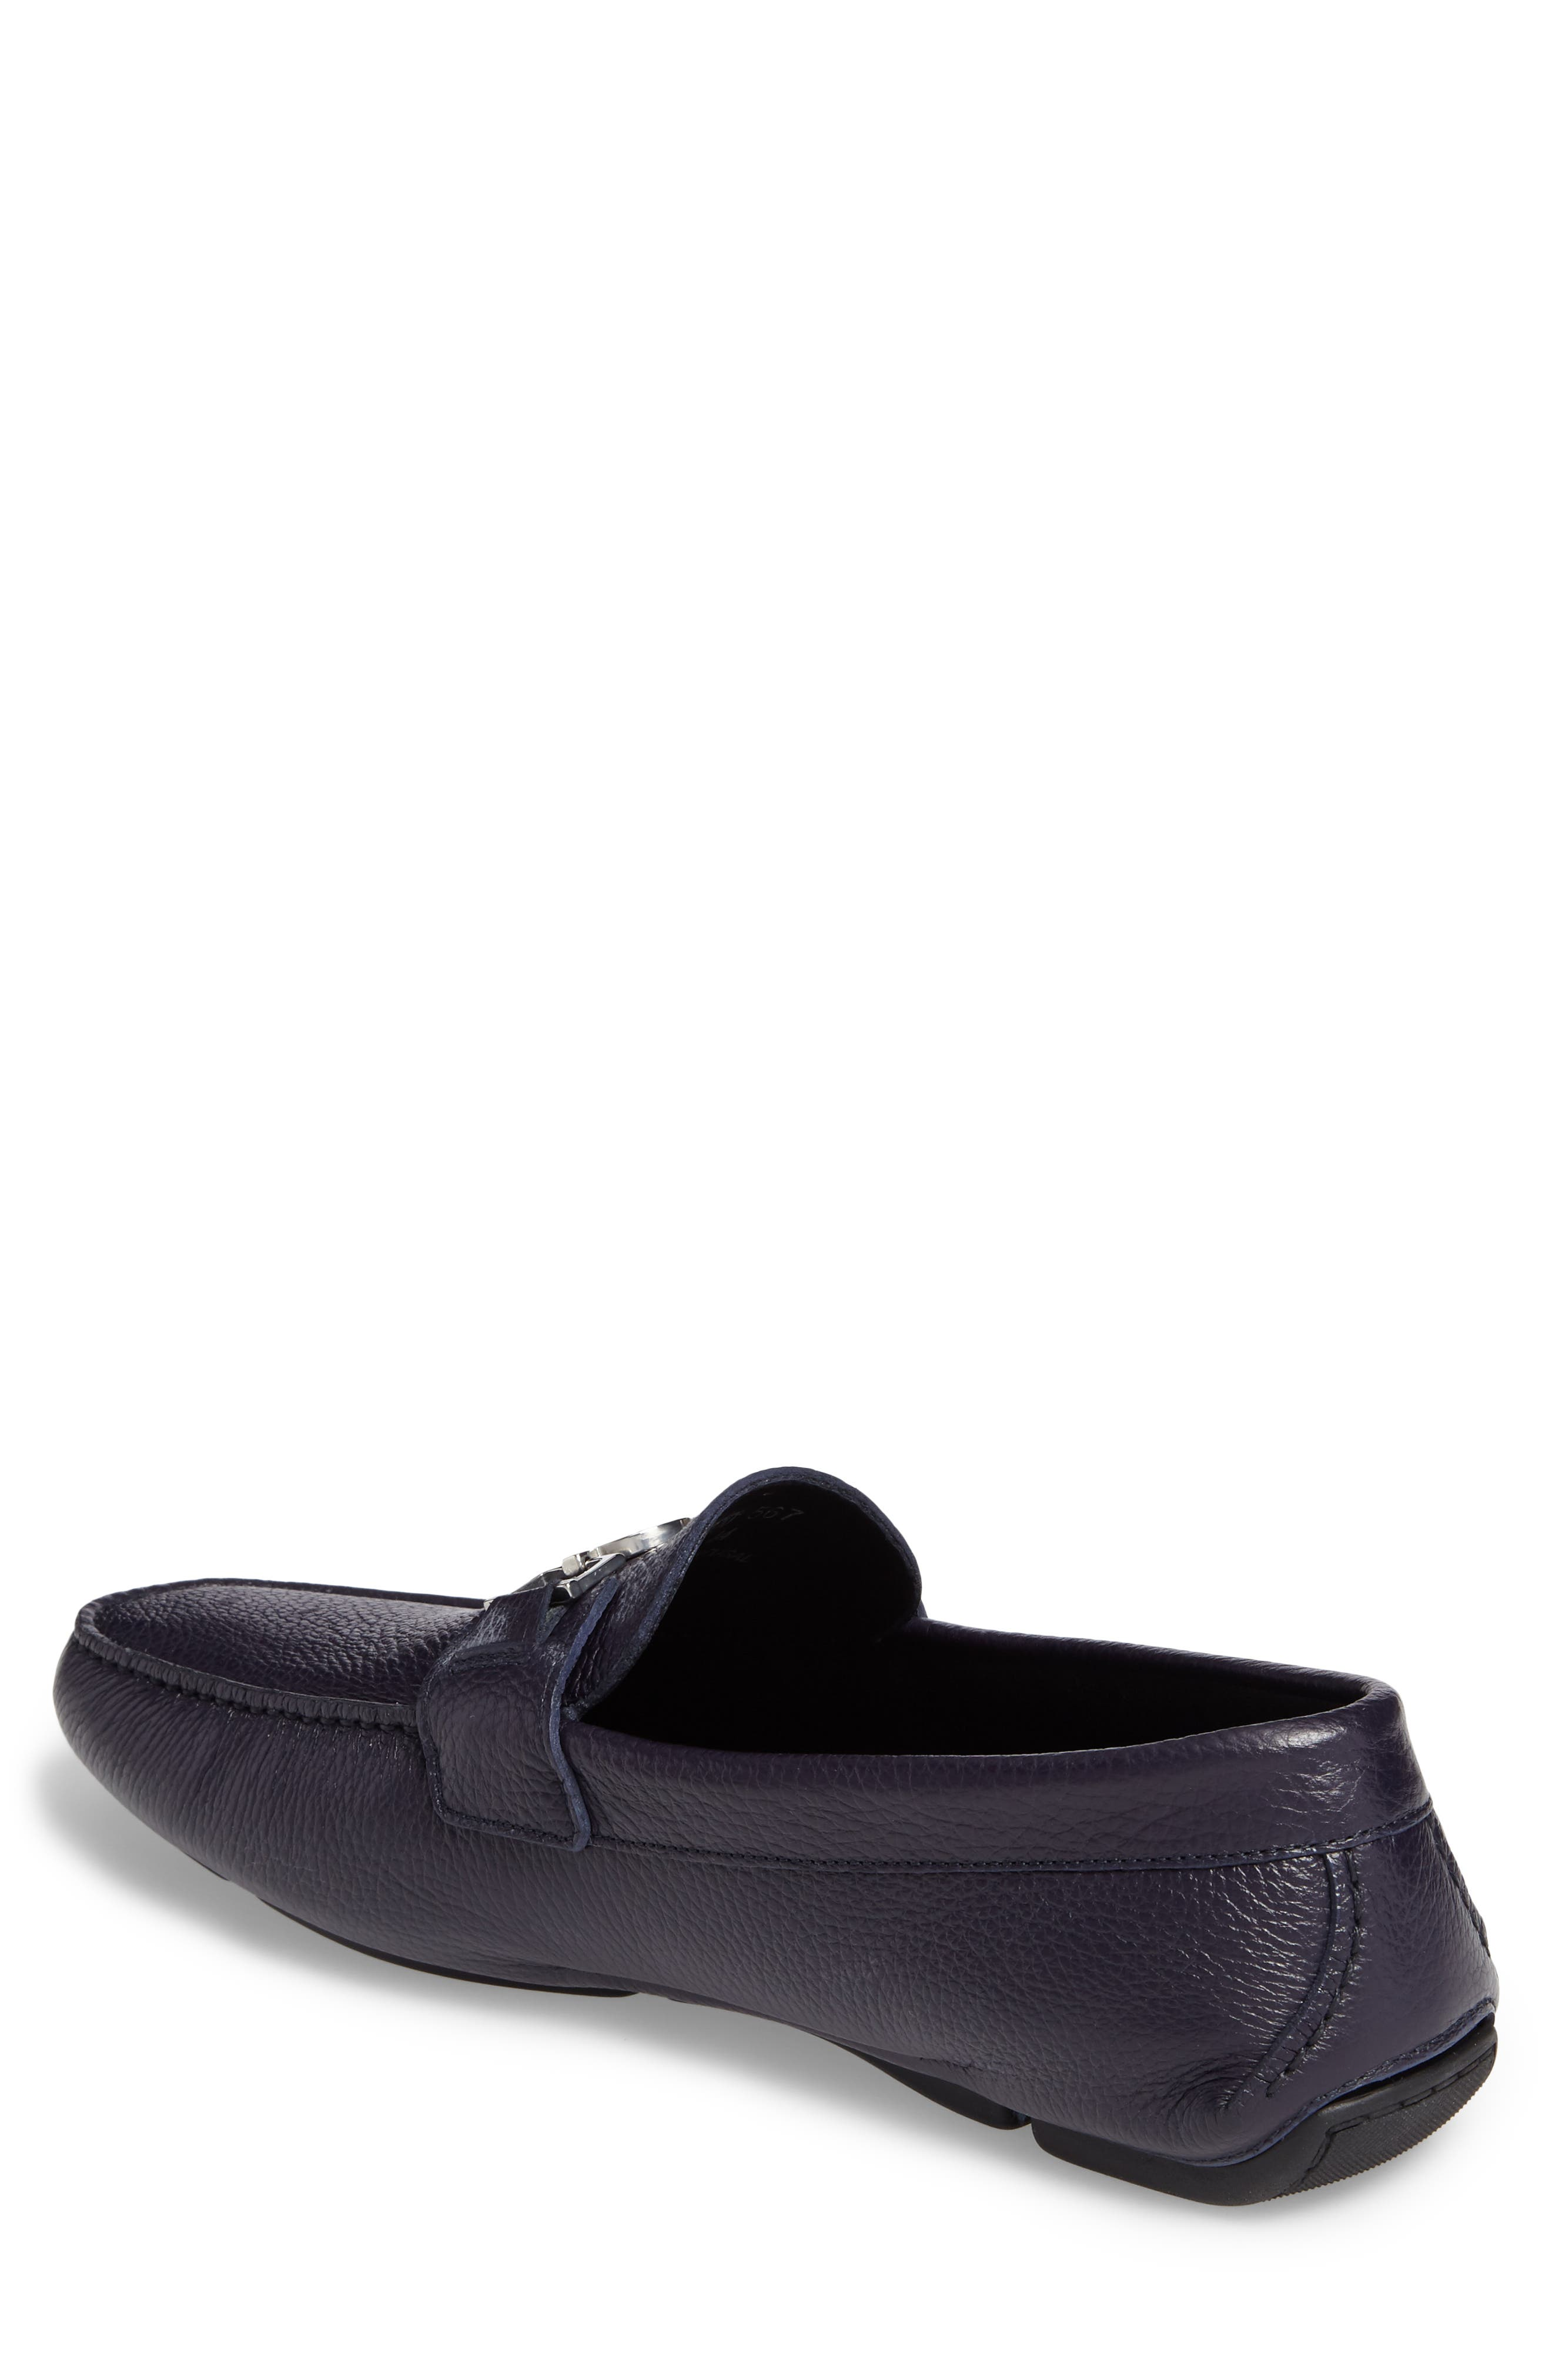 Alternate Image 2  - Versace Driving Shoe (Men)